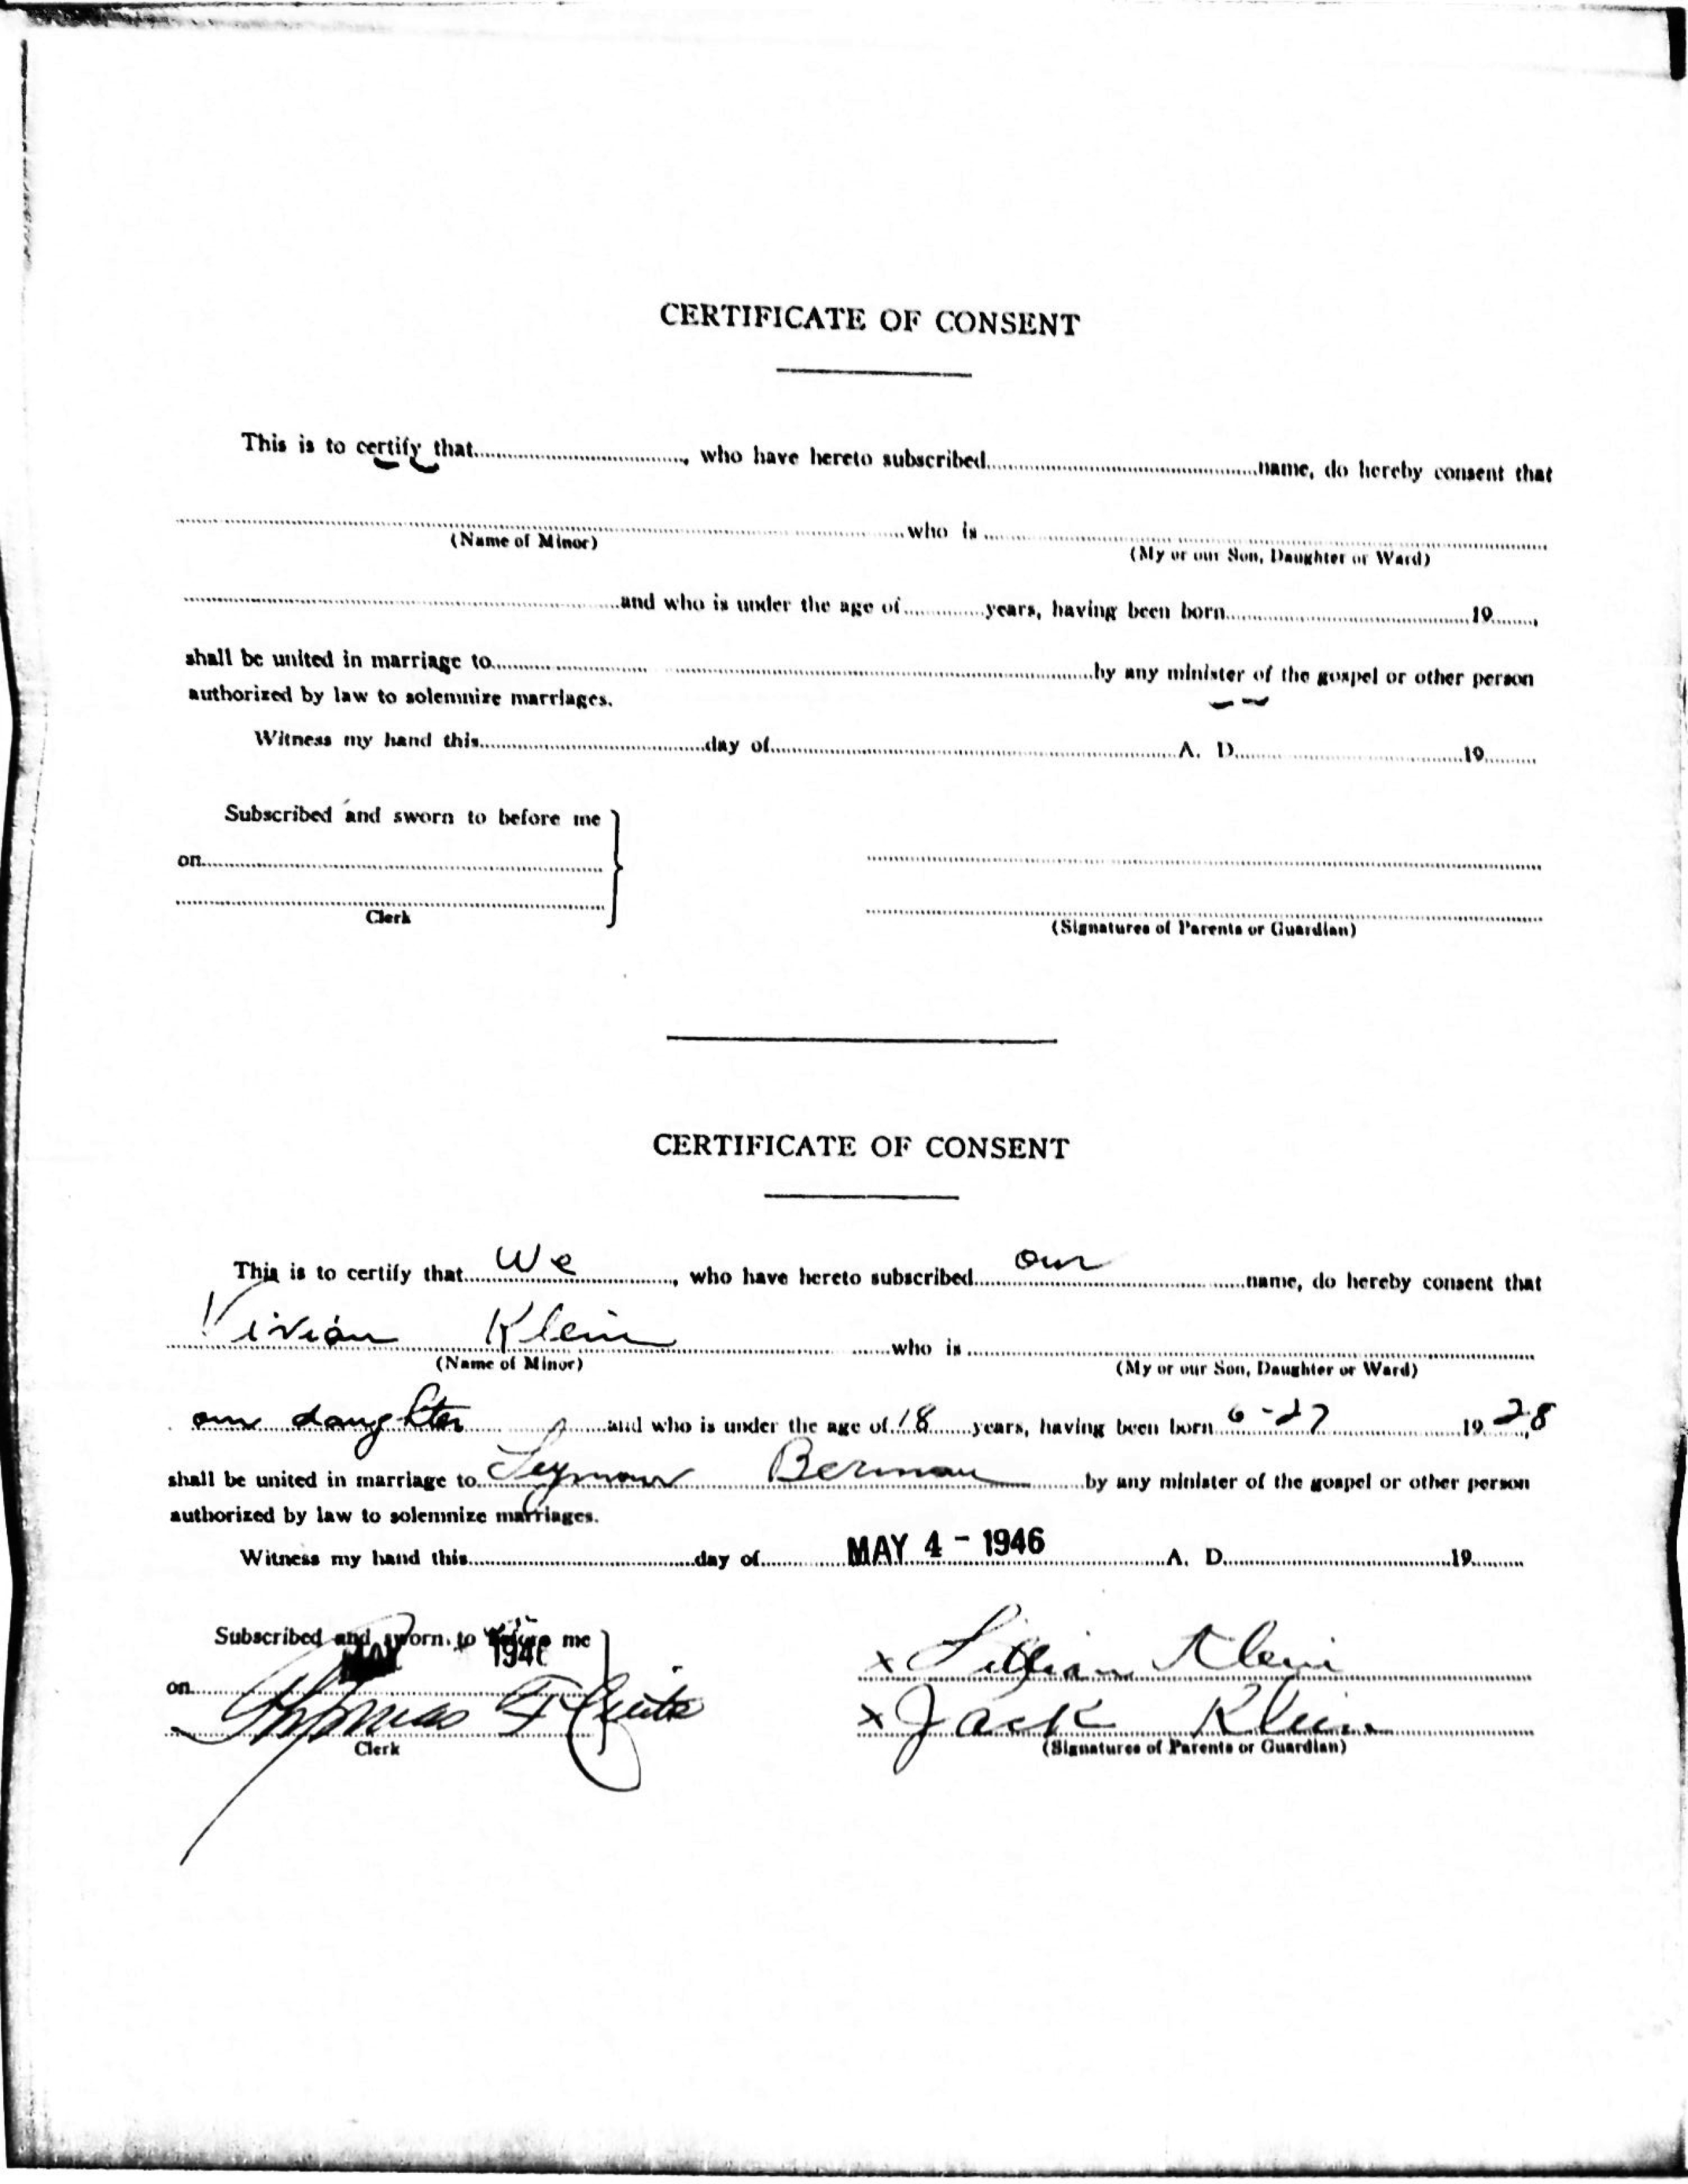 New york city marriage affidavits and licenses cousinist family seymour berman and vivian klein berman marriage certificate of consent 1betcityfo Gallery